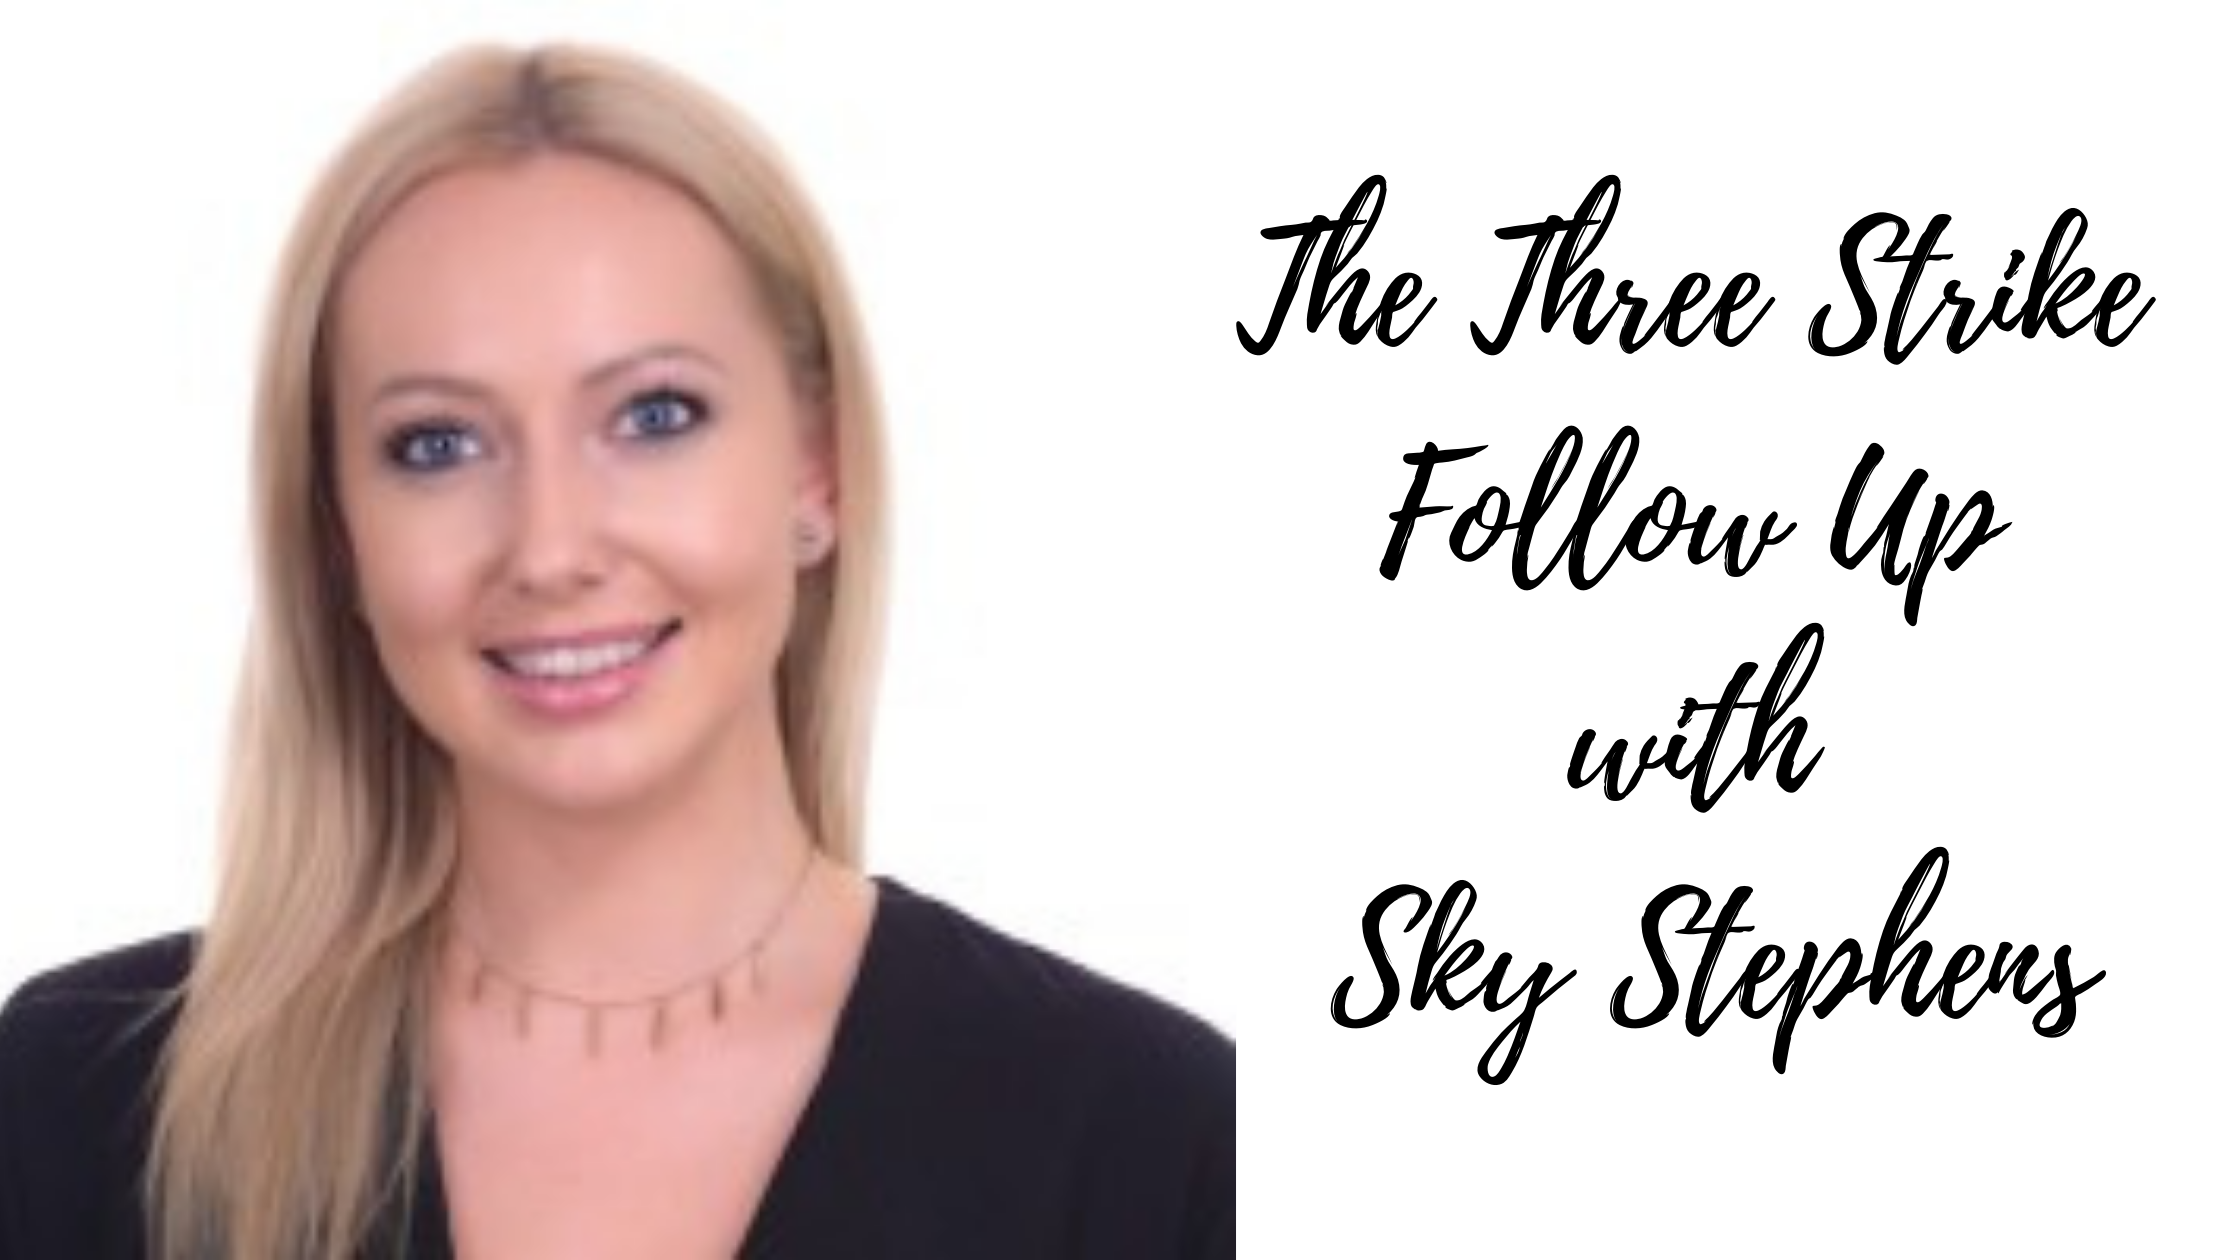 Episode #99: The Three Strike Follow Up with Sky Stephens